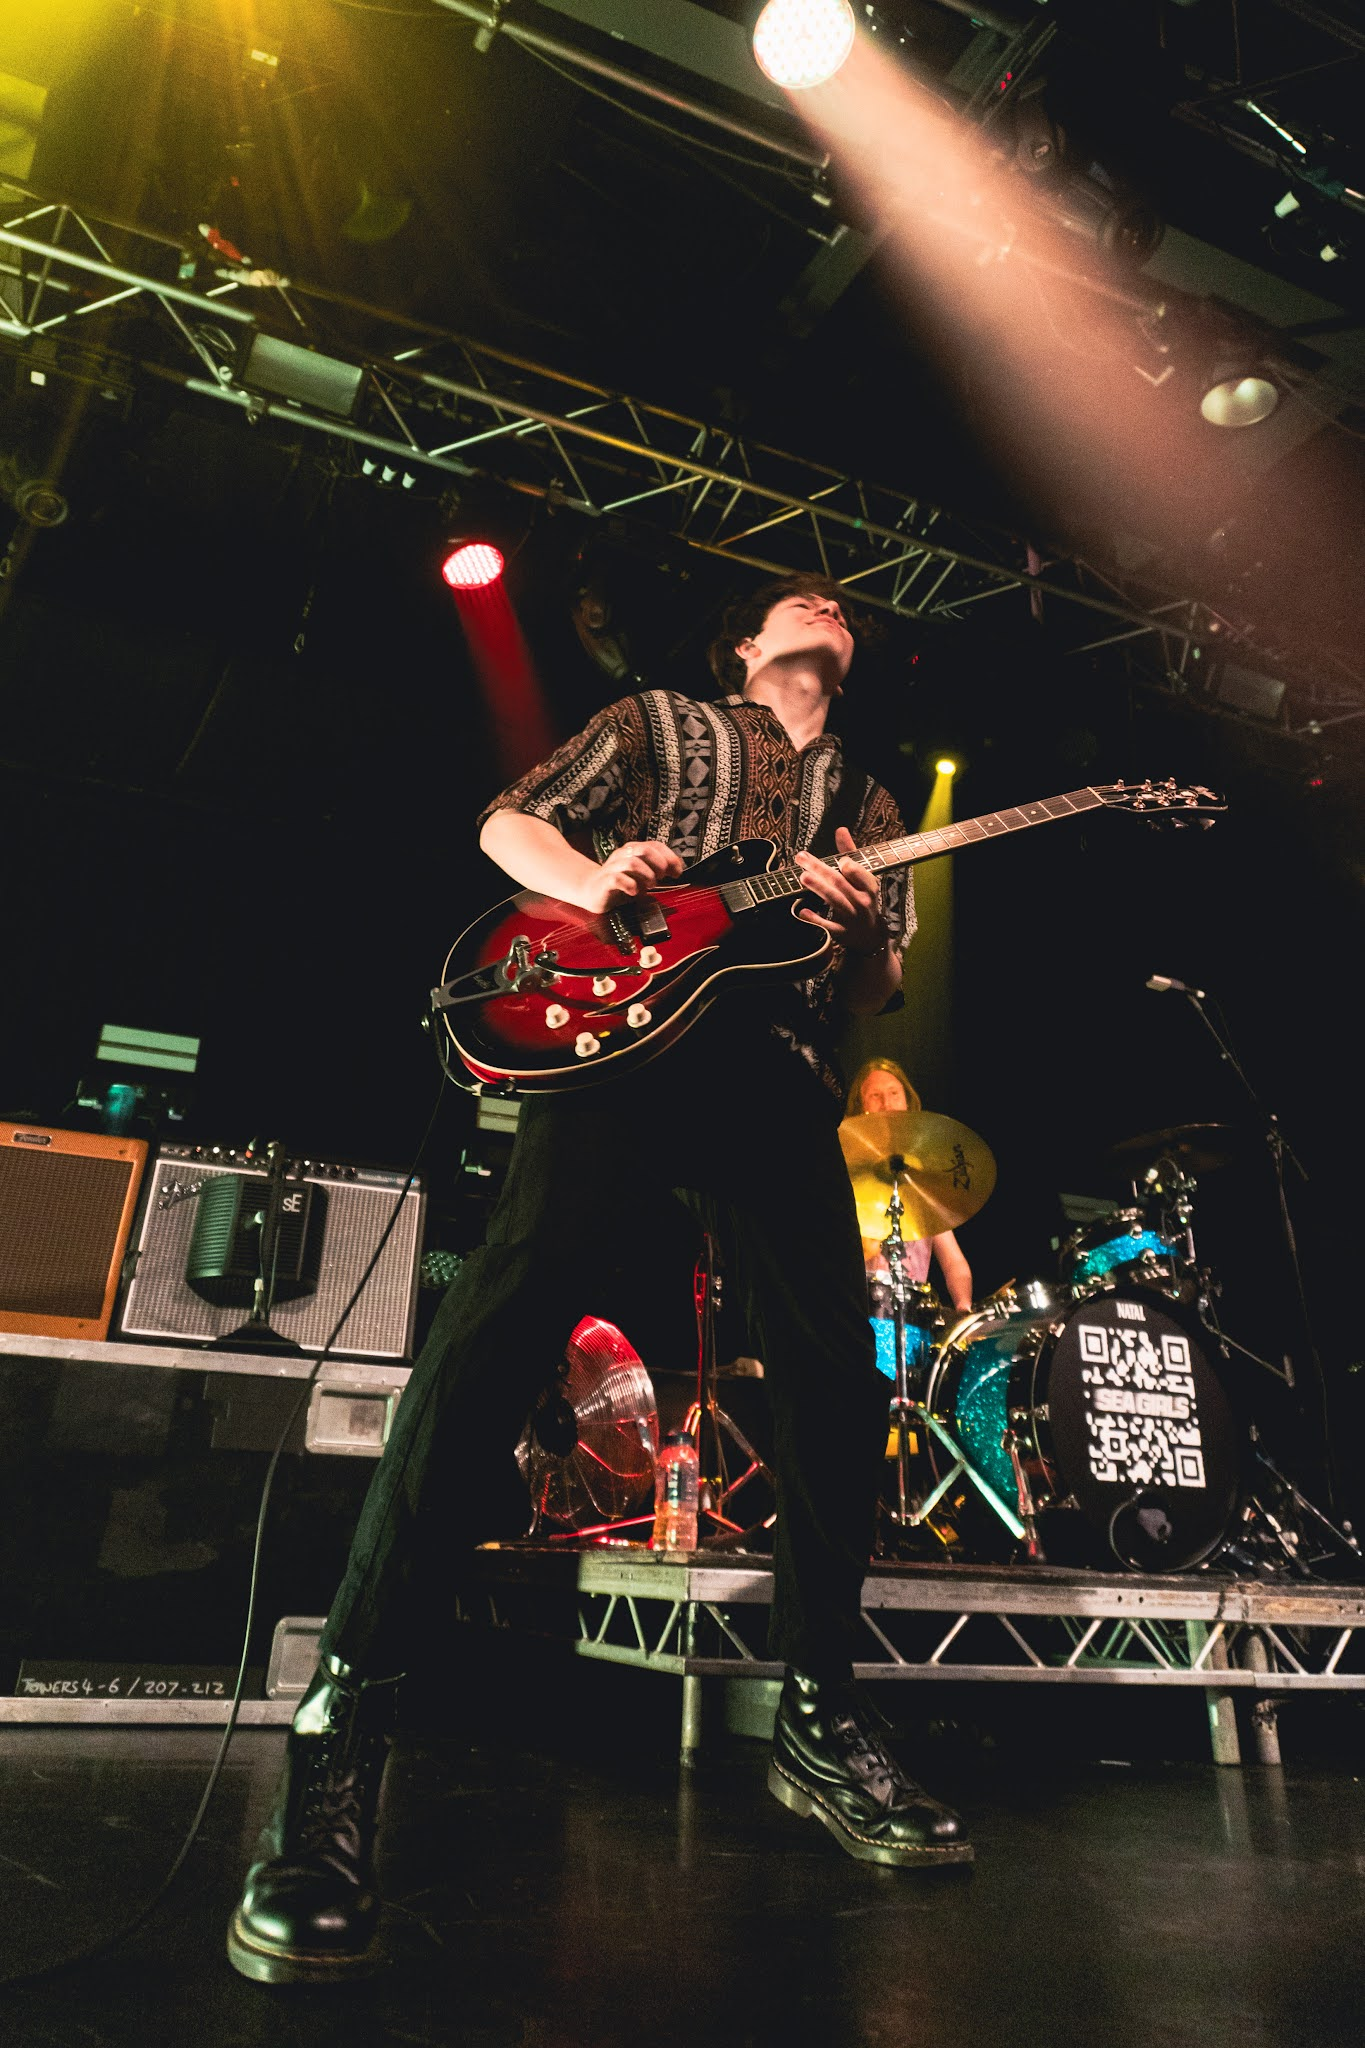 Photo of Rory (lead guitar) from Sea Girls on stage with Oli (drummer) in background